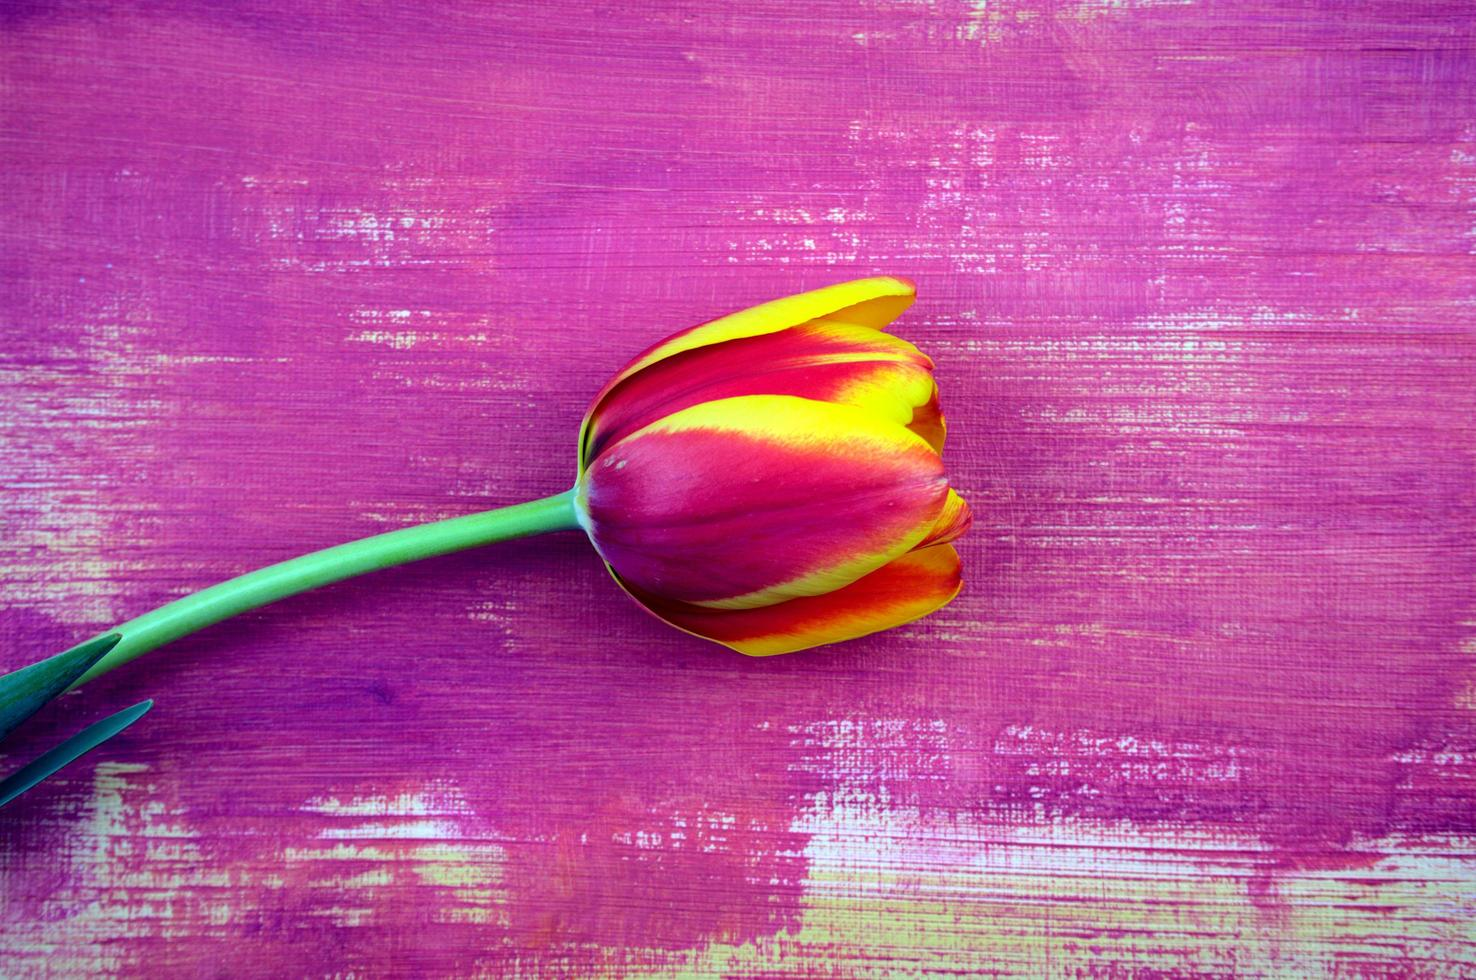 Purple, red magenta tulip flat lay on handmade, hand-drawn purple brush grunge color abstract acrylic texture background photo